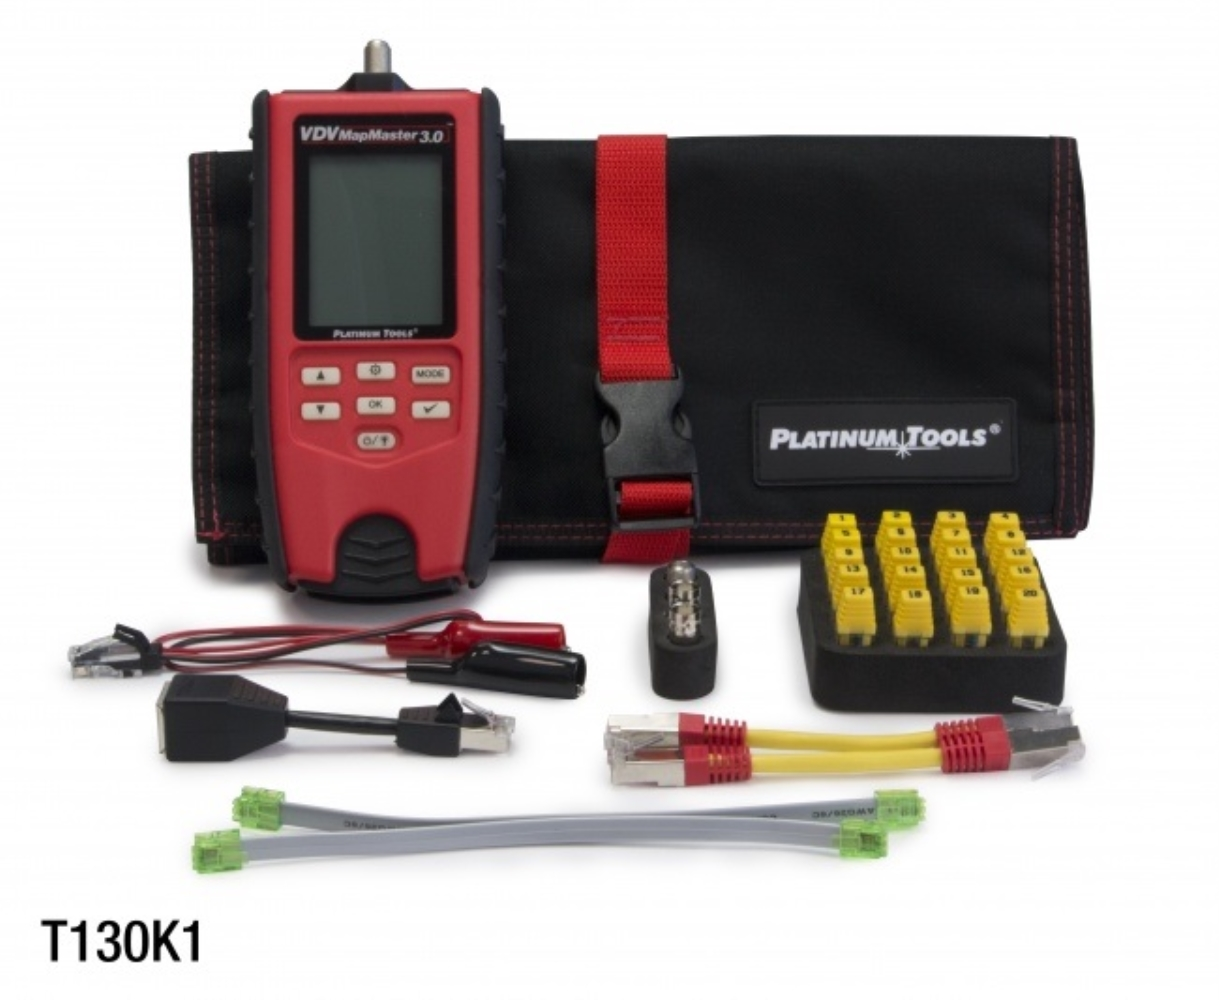 photo of PLATINUM TOOLS VDV MAPMASTER 3.0 KIT, T130K1